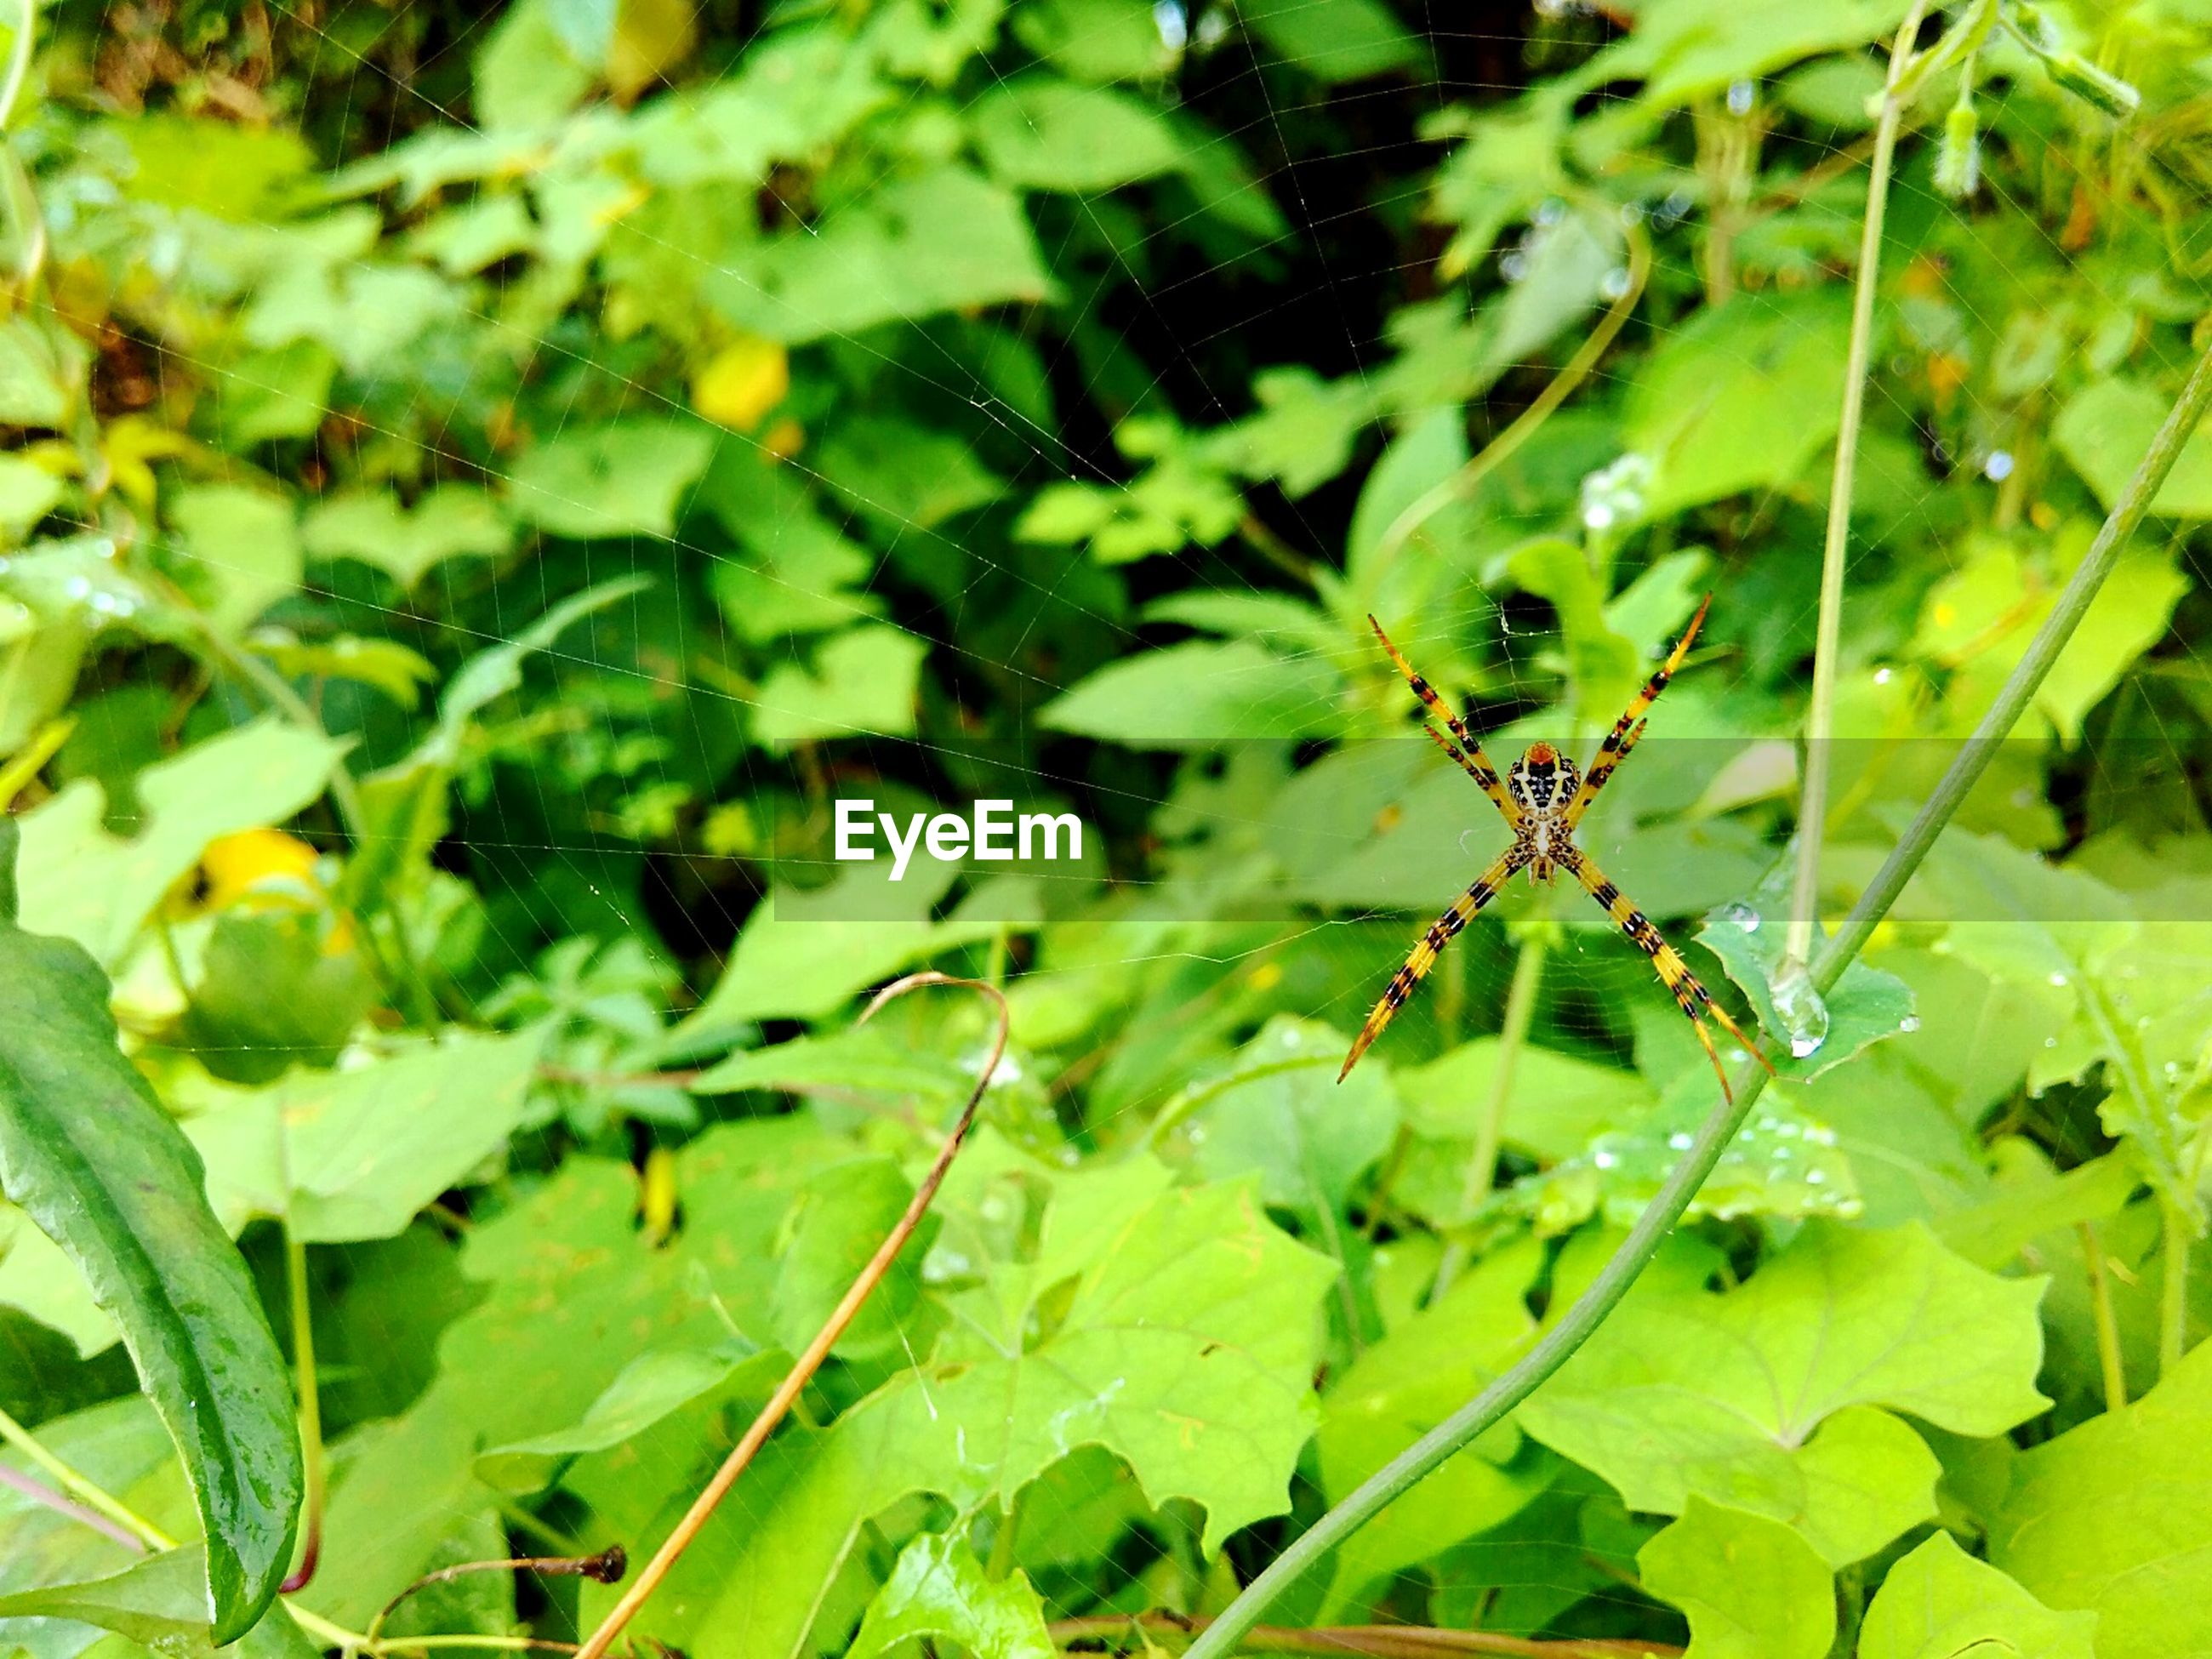 insect, animal themes, animals in the wild, one animal, wildlife, green color, leaf, plant, close-up, growth, nature, focus on foreground, beauty in nature, selective focus, day, outdoors, no people, zoology, two animals, flower